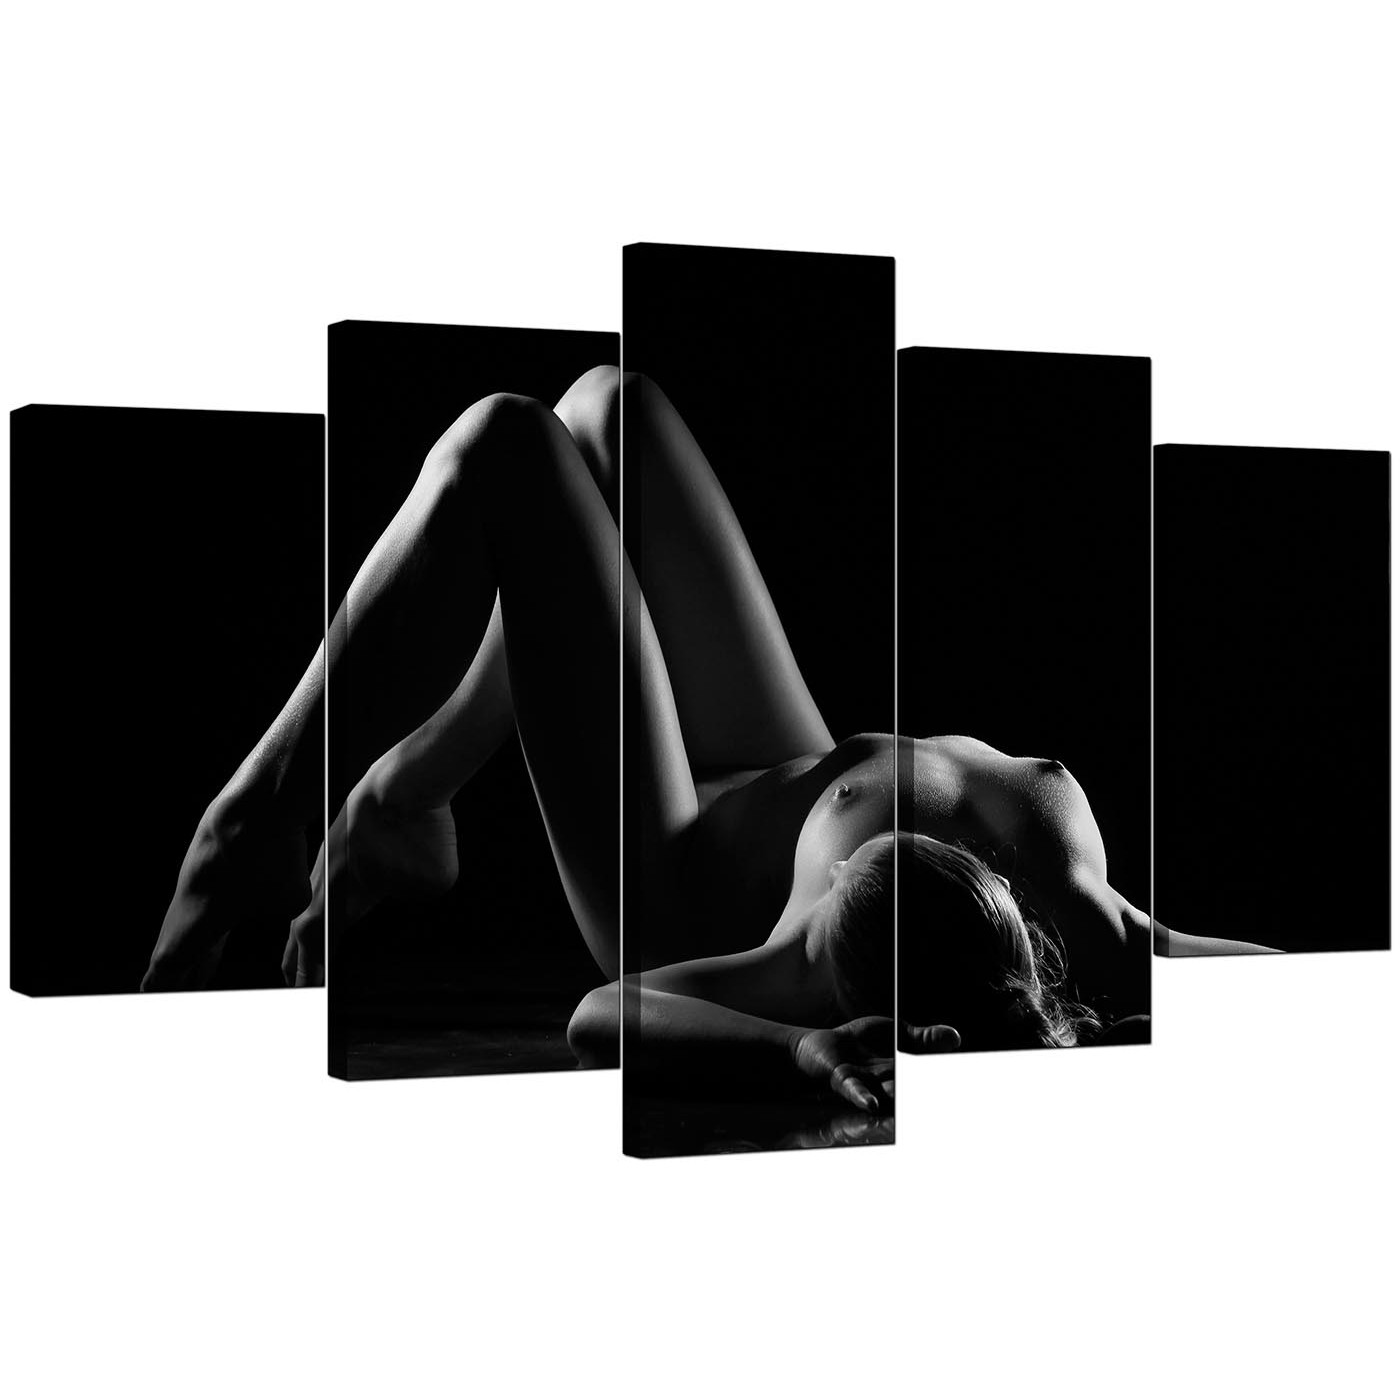 black and white woman and man nude artistic